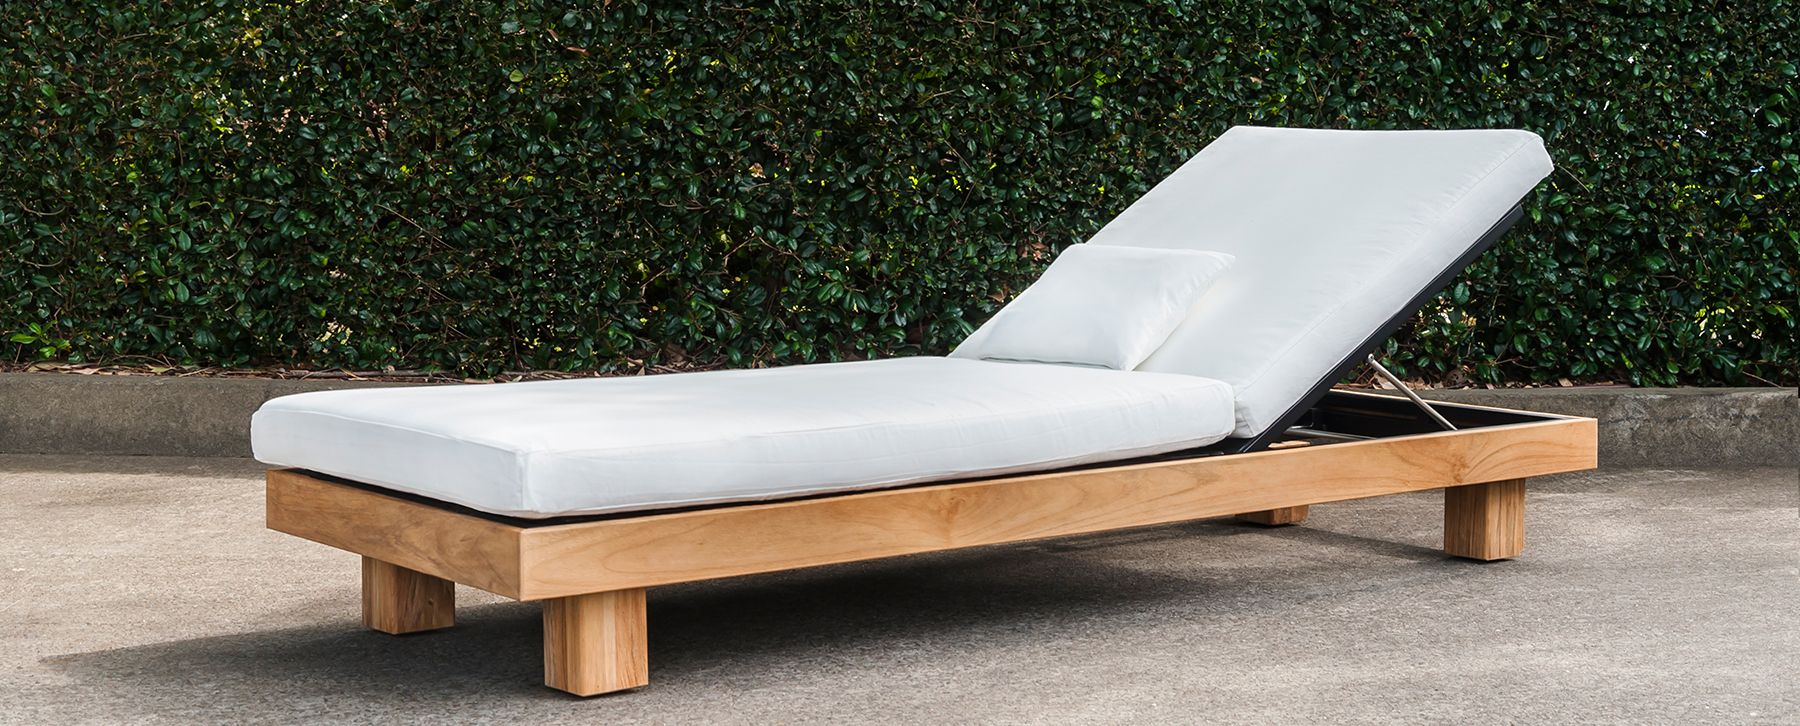 Alura Chaise Lounger Modern Teak Pool Furniture Contract 6